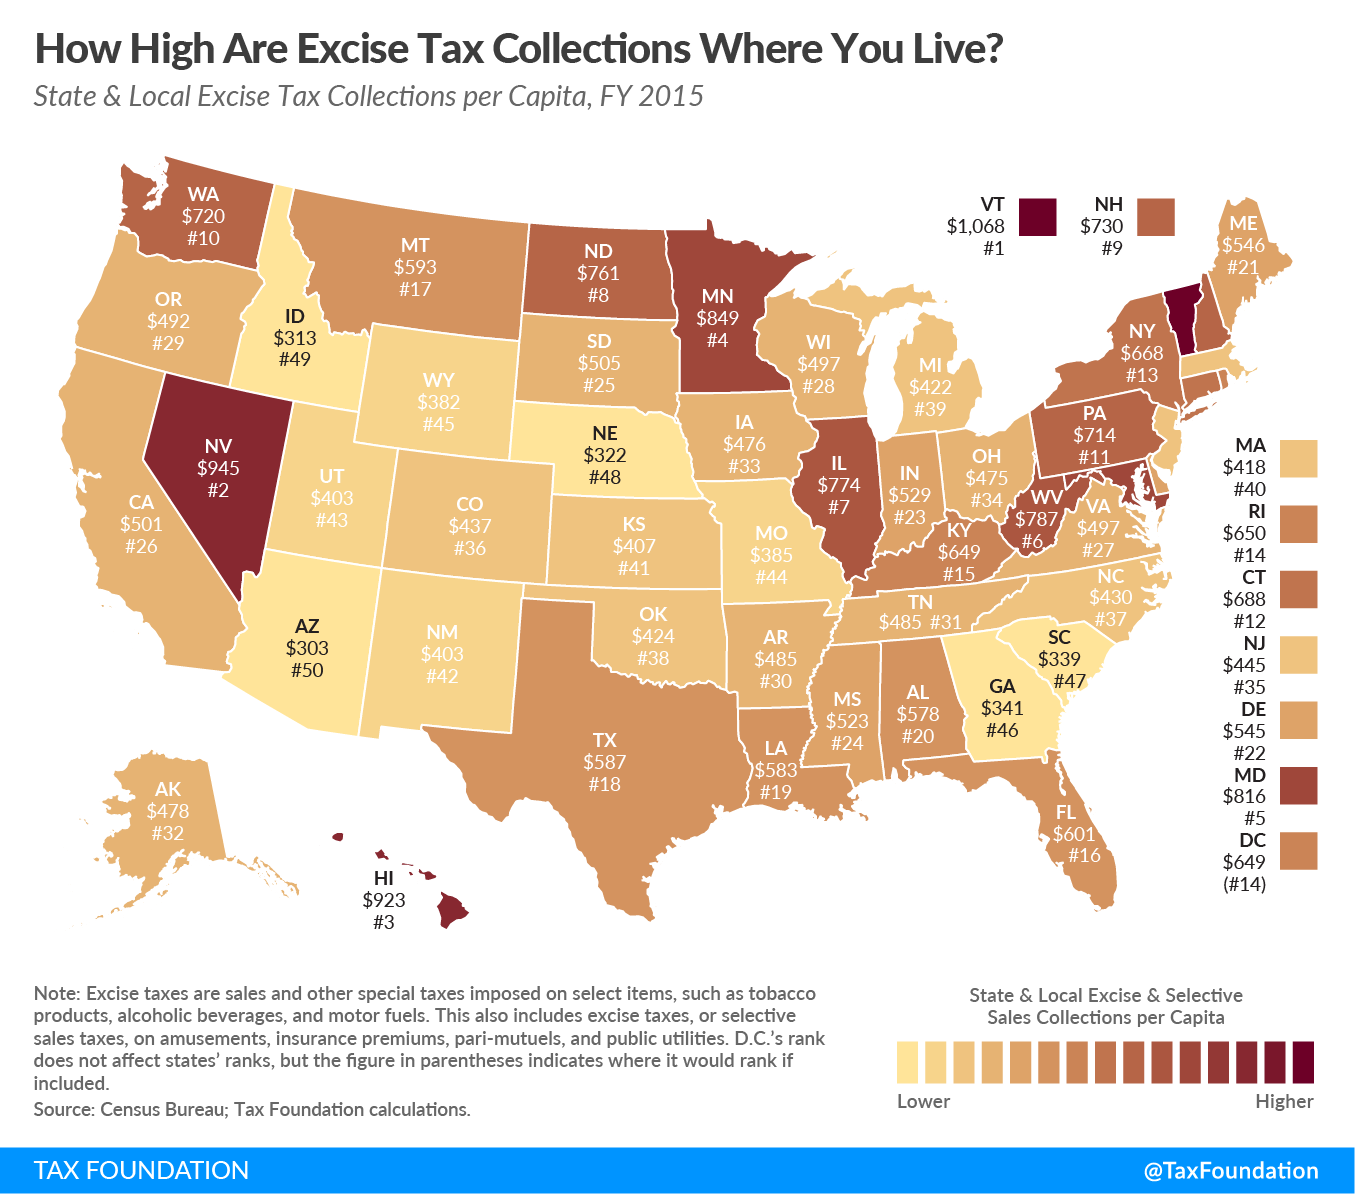 State & Local Excise Tax Collections per Capita, FY 2015